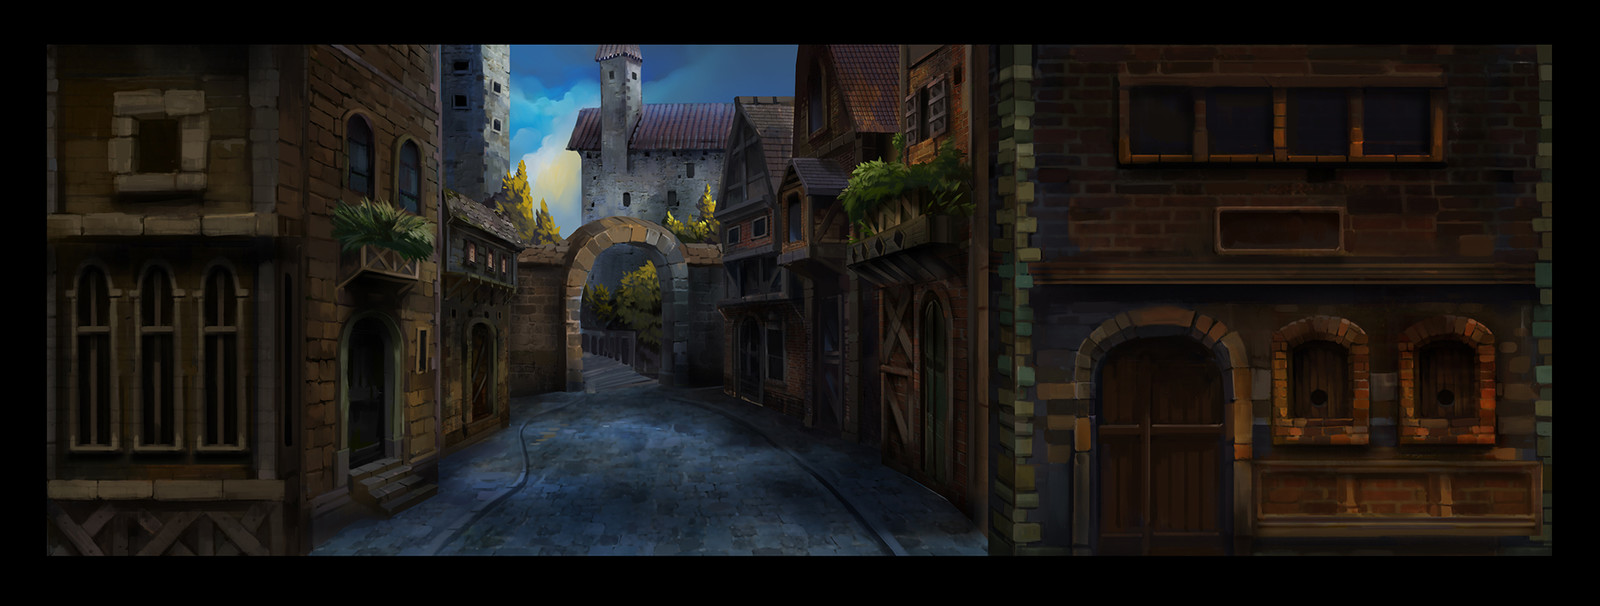 Fantasy Background Project